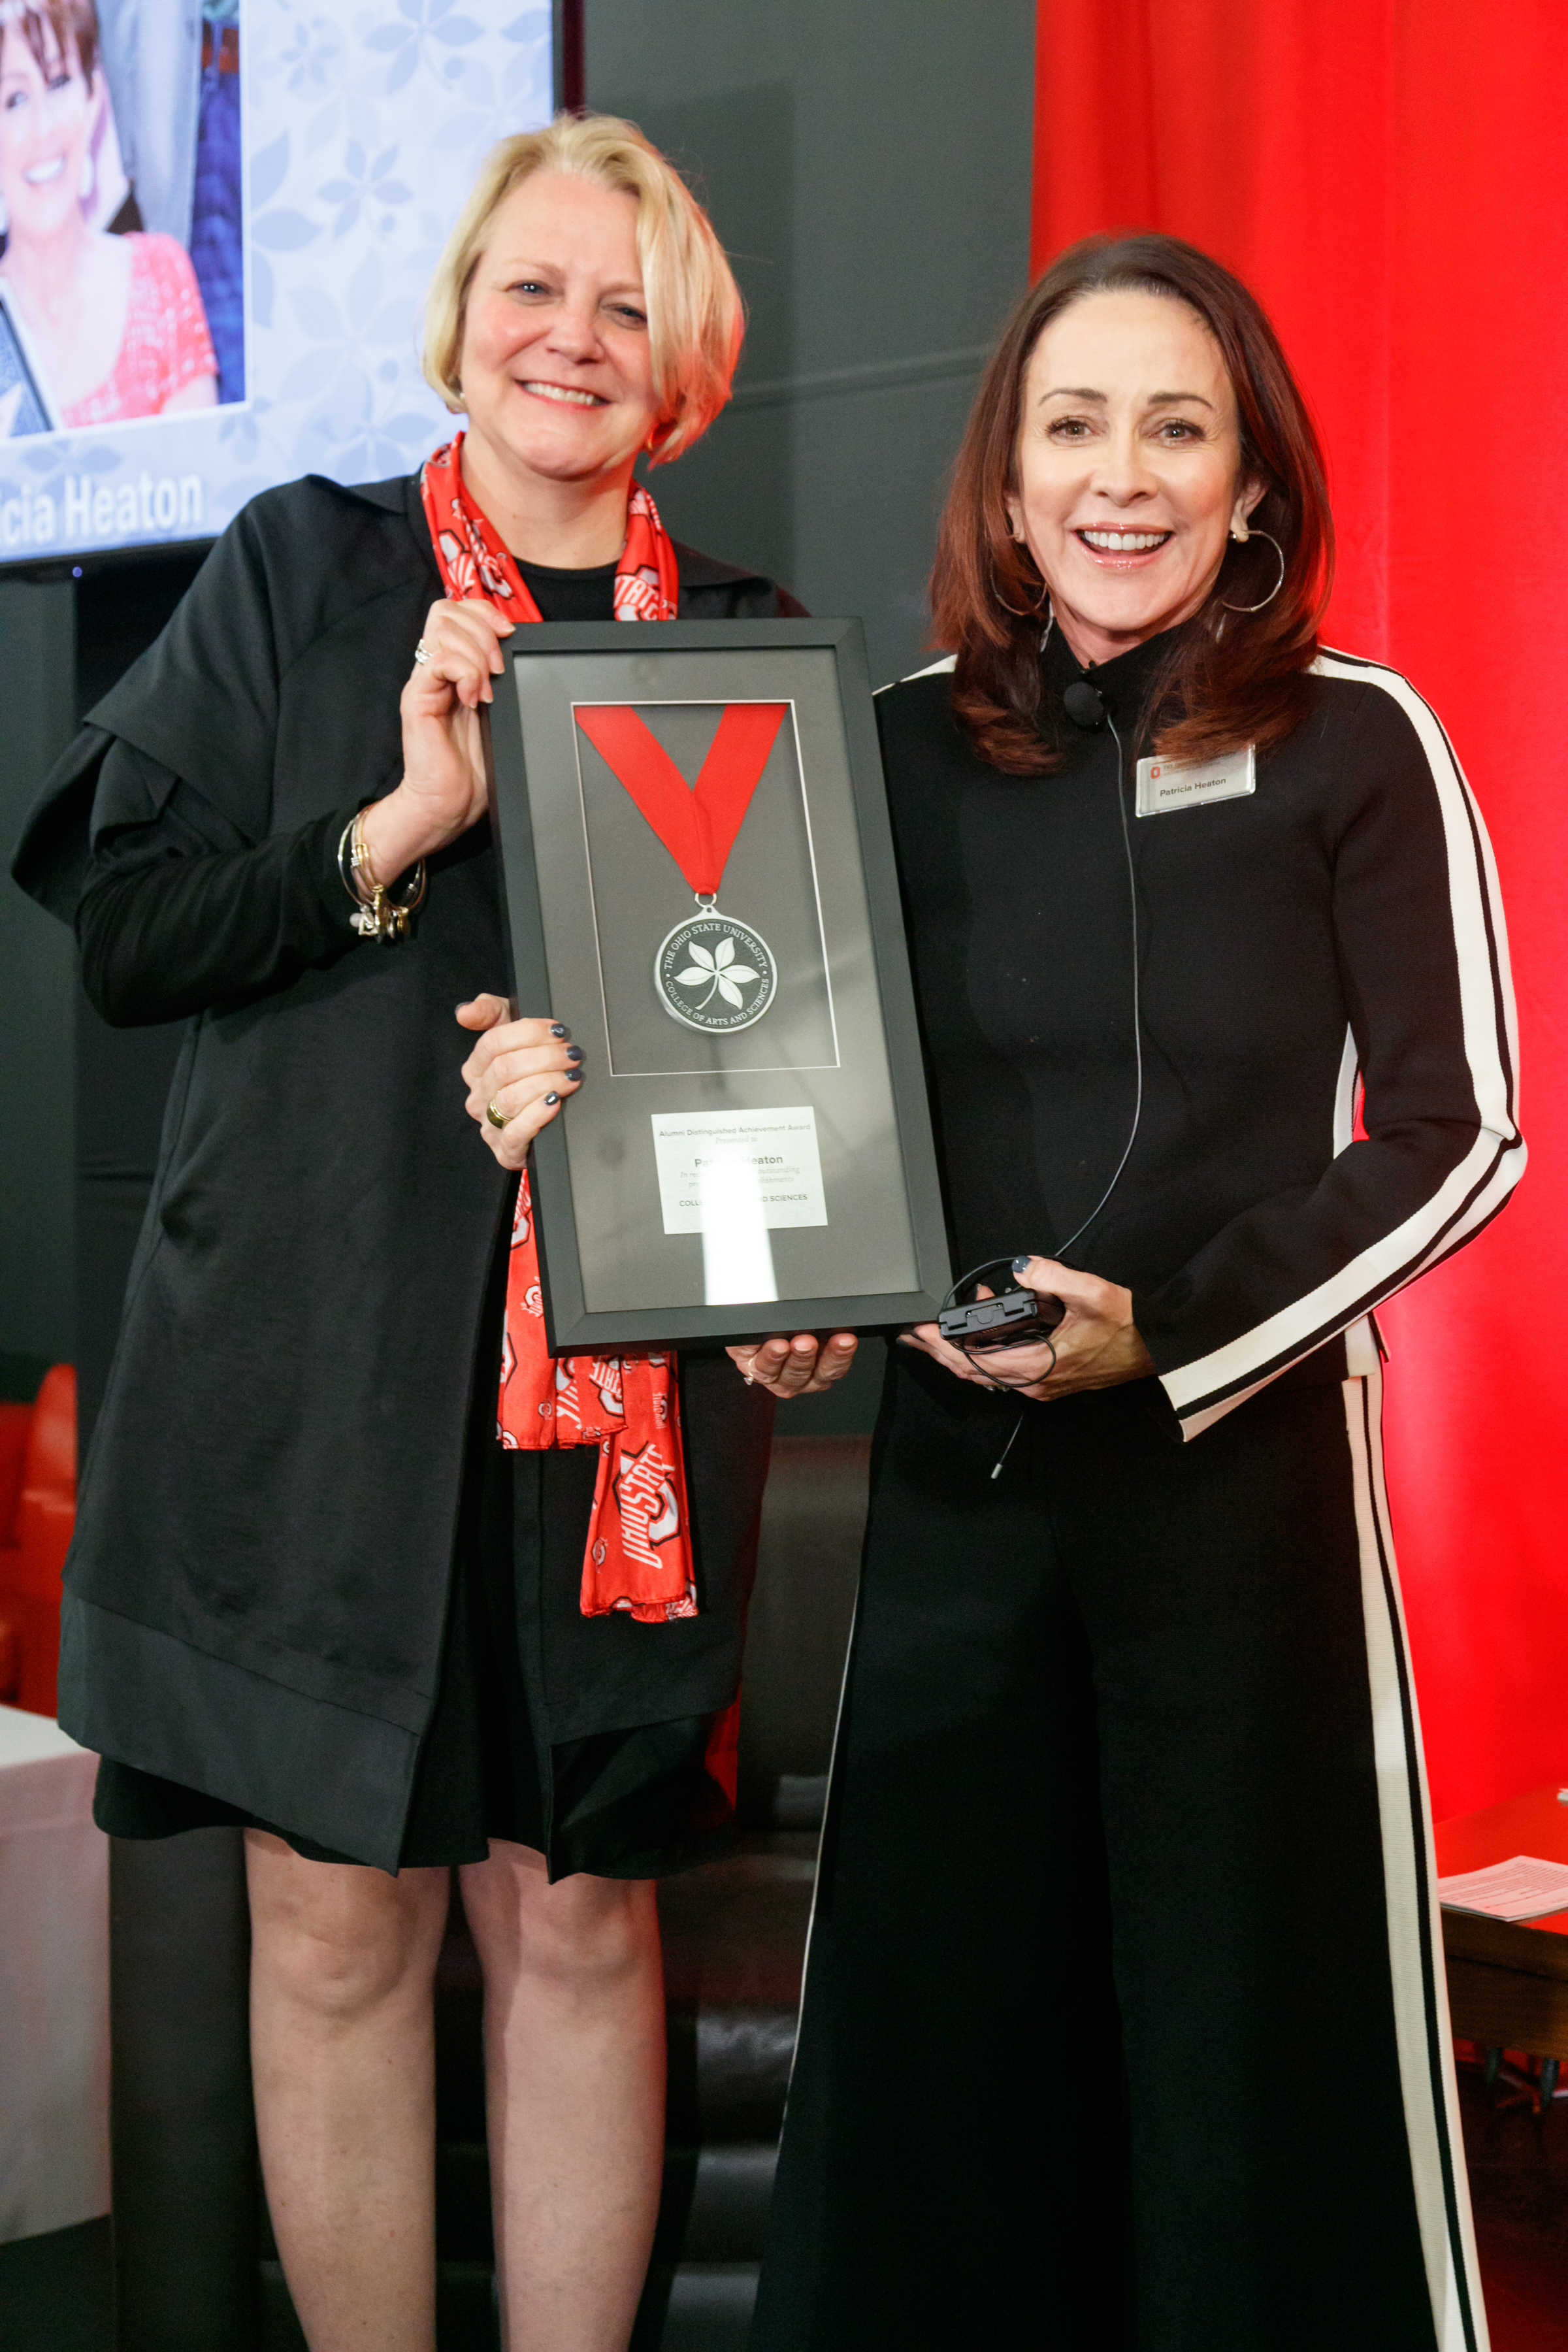 Patricia Heaton | Distinguished Alumni Achievement Award